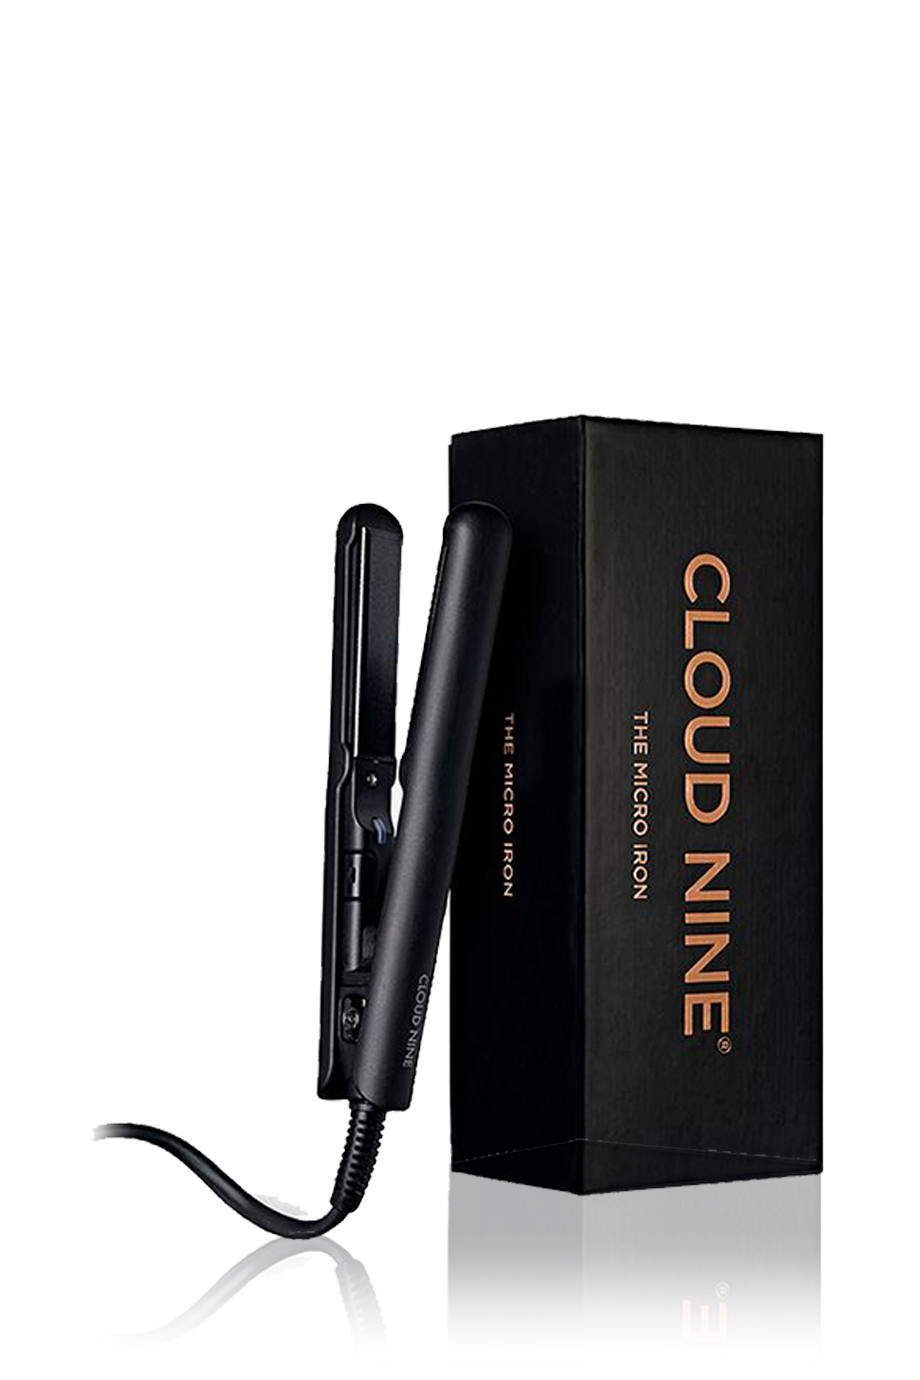 Стайлер «Мини» Cloud Nine Micro Iron в интернет-магазине Authentica.love